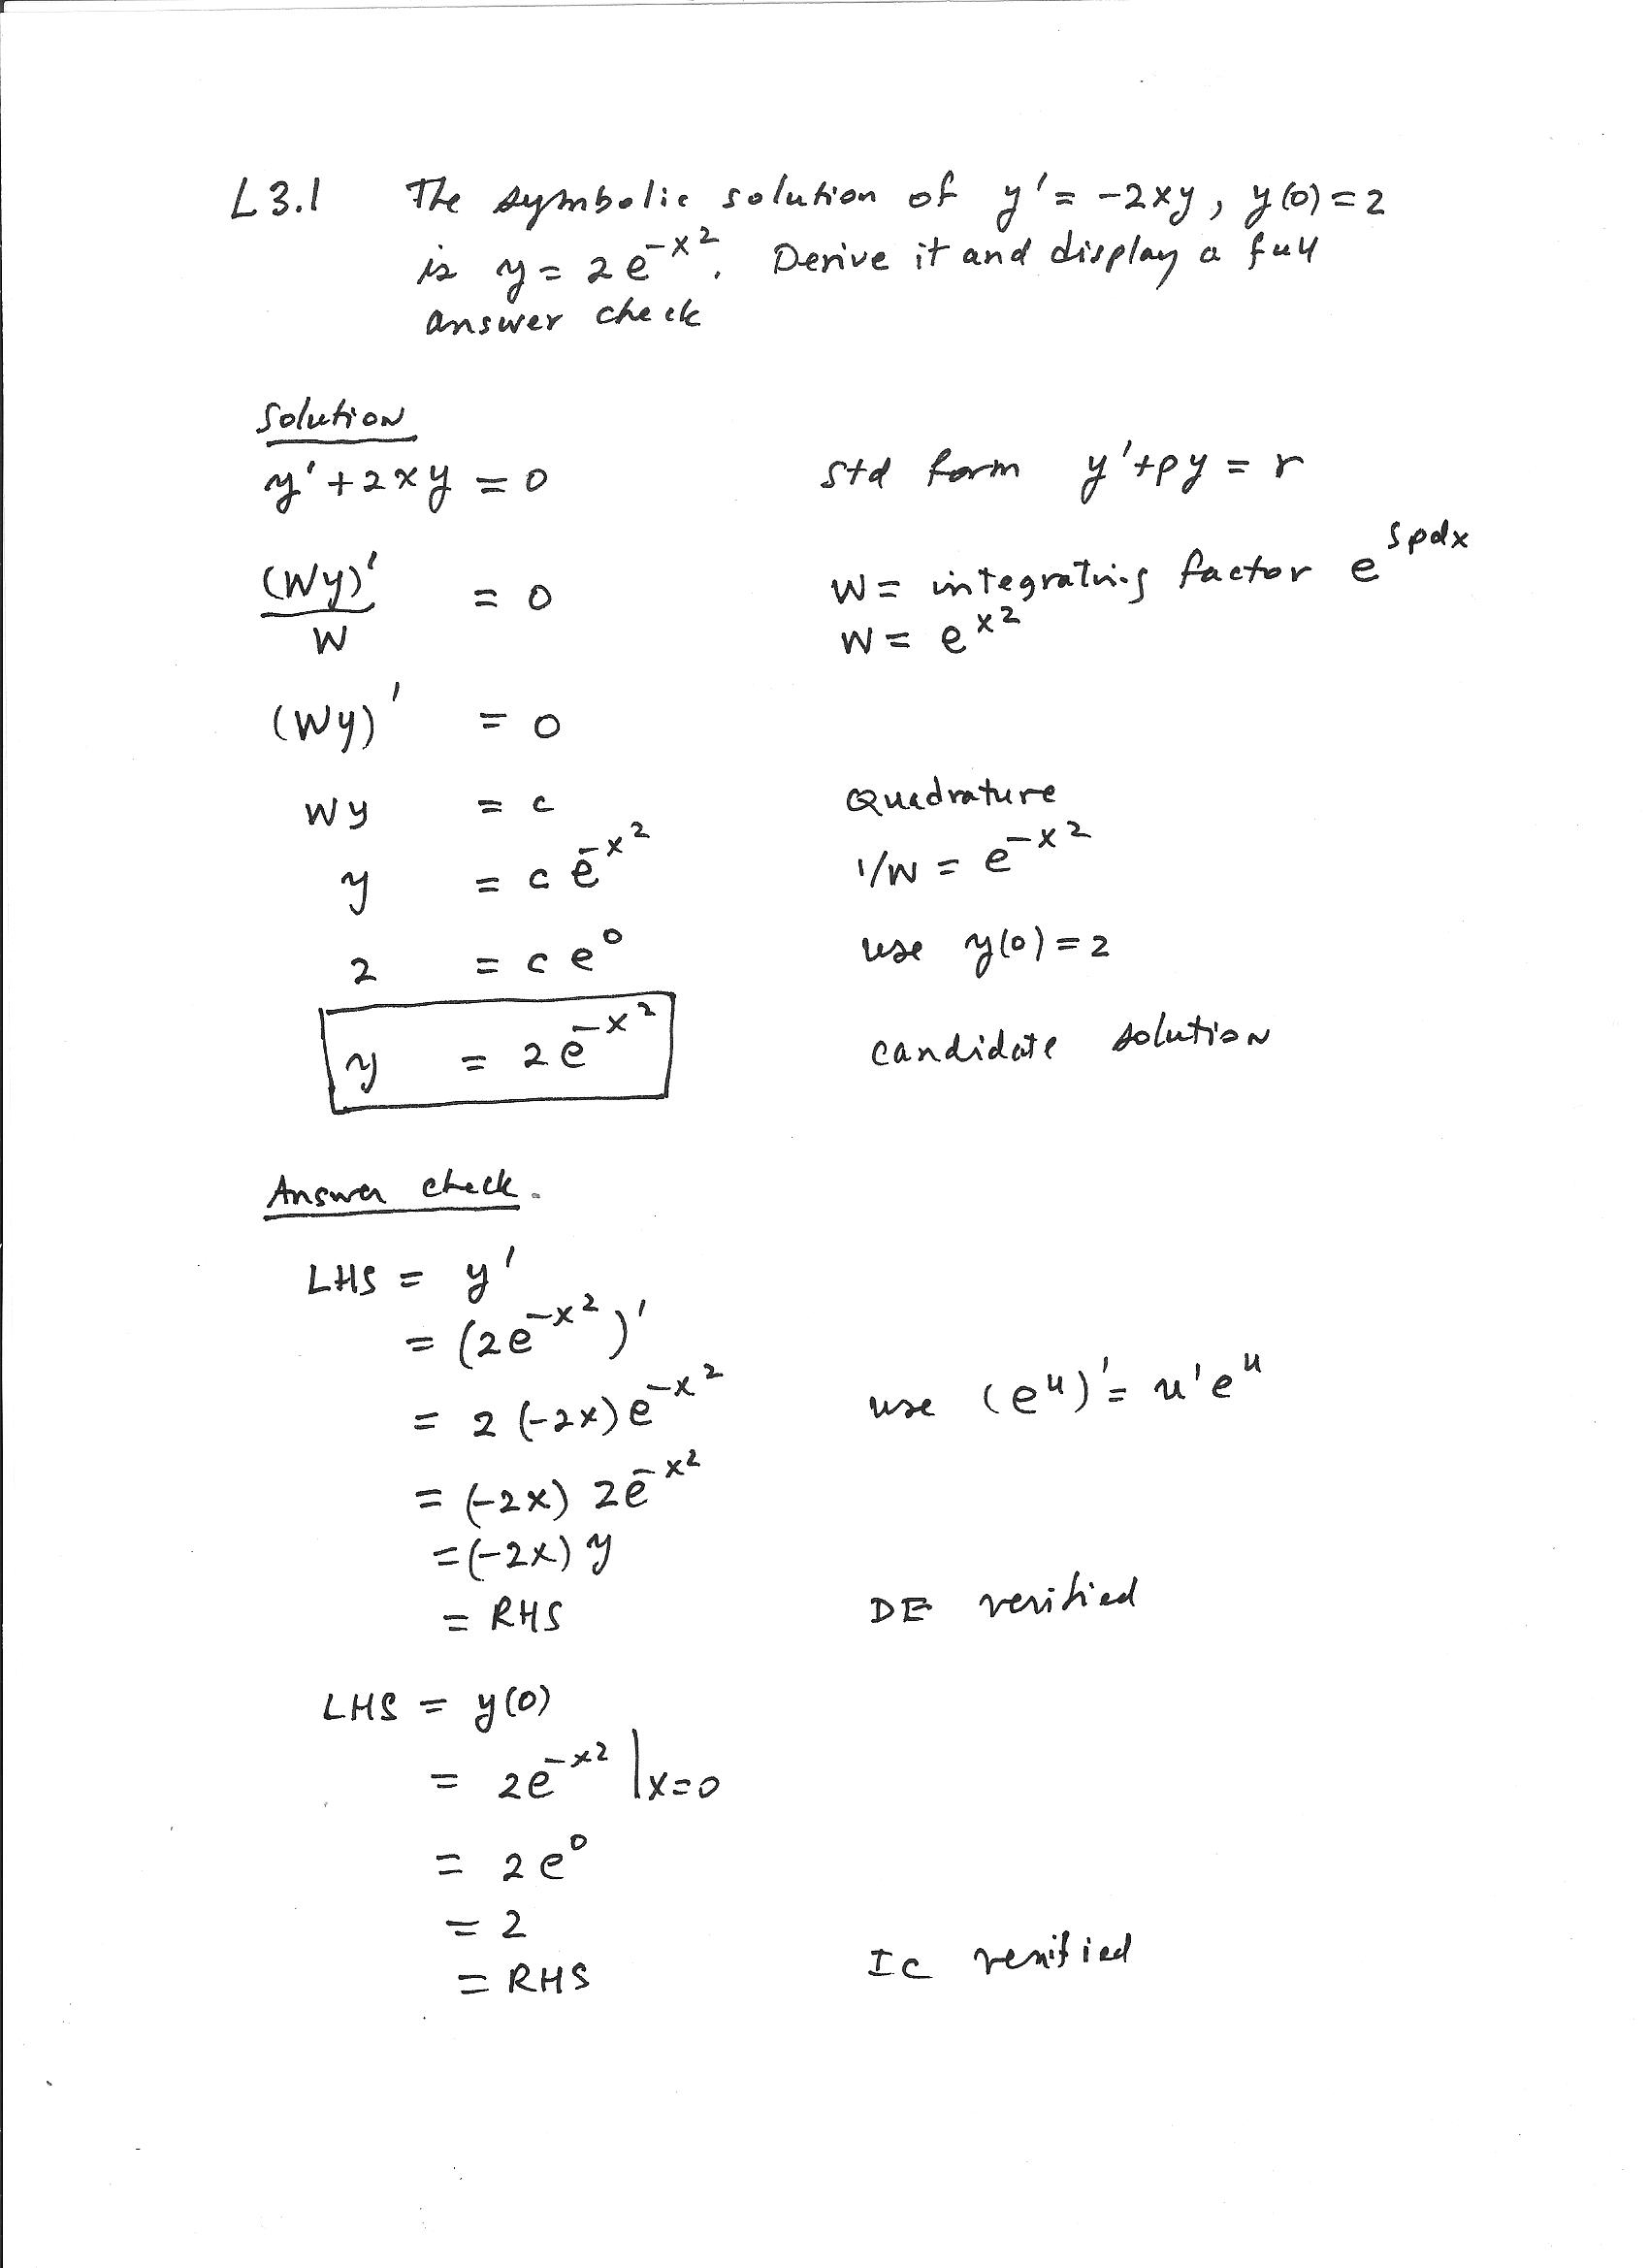 Worksheet Level 3 Writing Linear Equations Answers